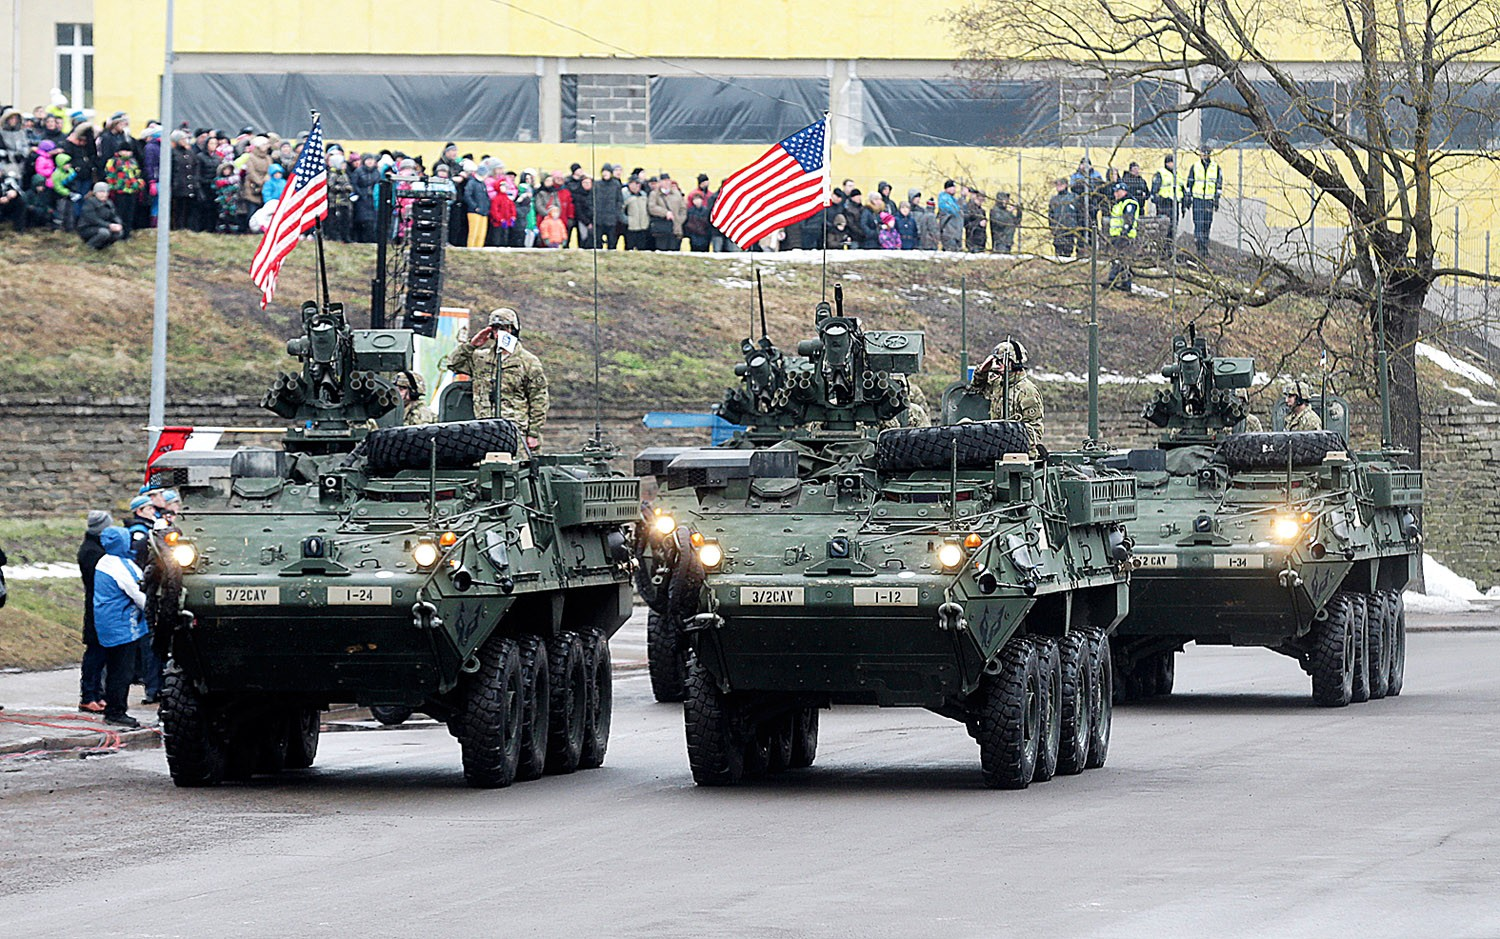 U.S. soldiers attend military parade celebrating Estonia's Independence Day near border crossing with Russia in Narva February 24, 2015.  Together with Estonians in the parade marched also soldiers from Spain, the United States, United Kingdom, Latvia, Lithuania and the Netherlands. REUTERS/Ints Kalnins (ESTONIA - Tags: POLITICS MILITARY ANNIVERSARY) - RTR4QXQ6